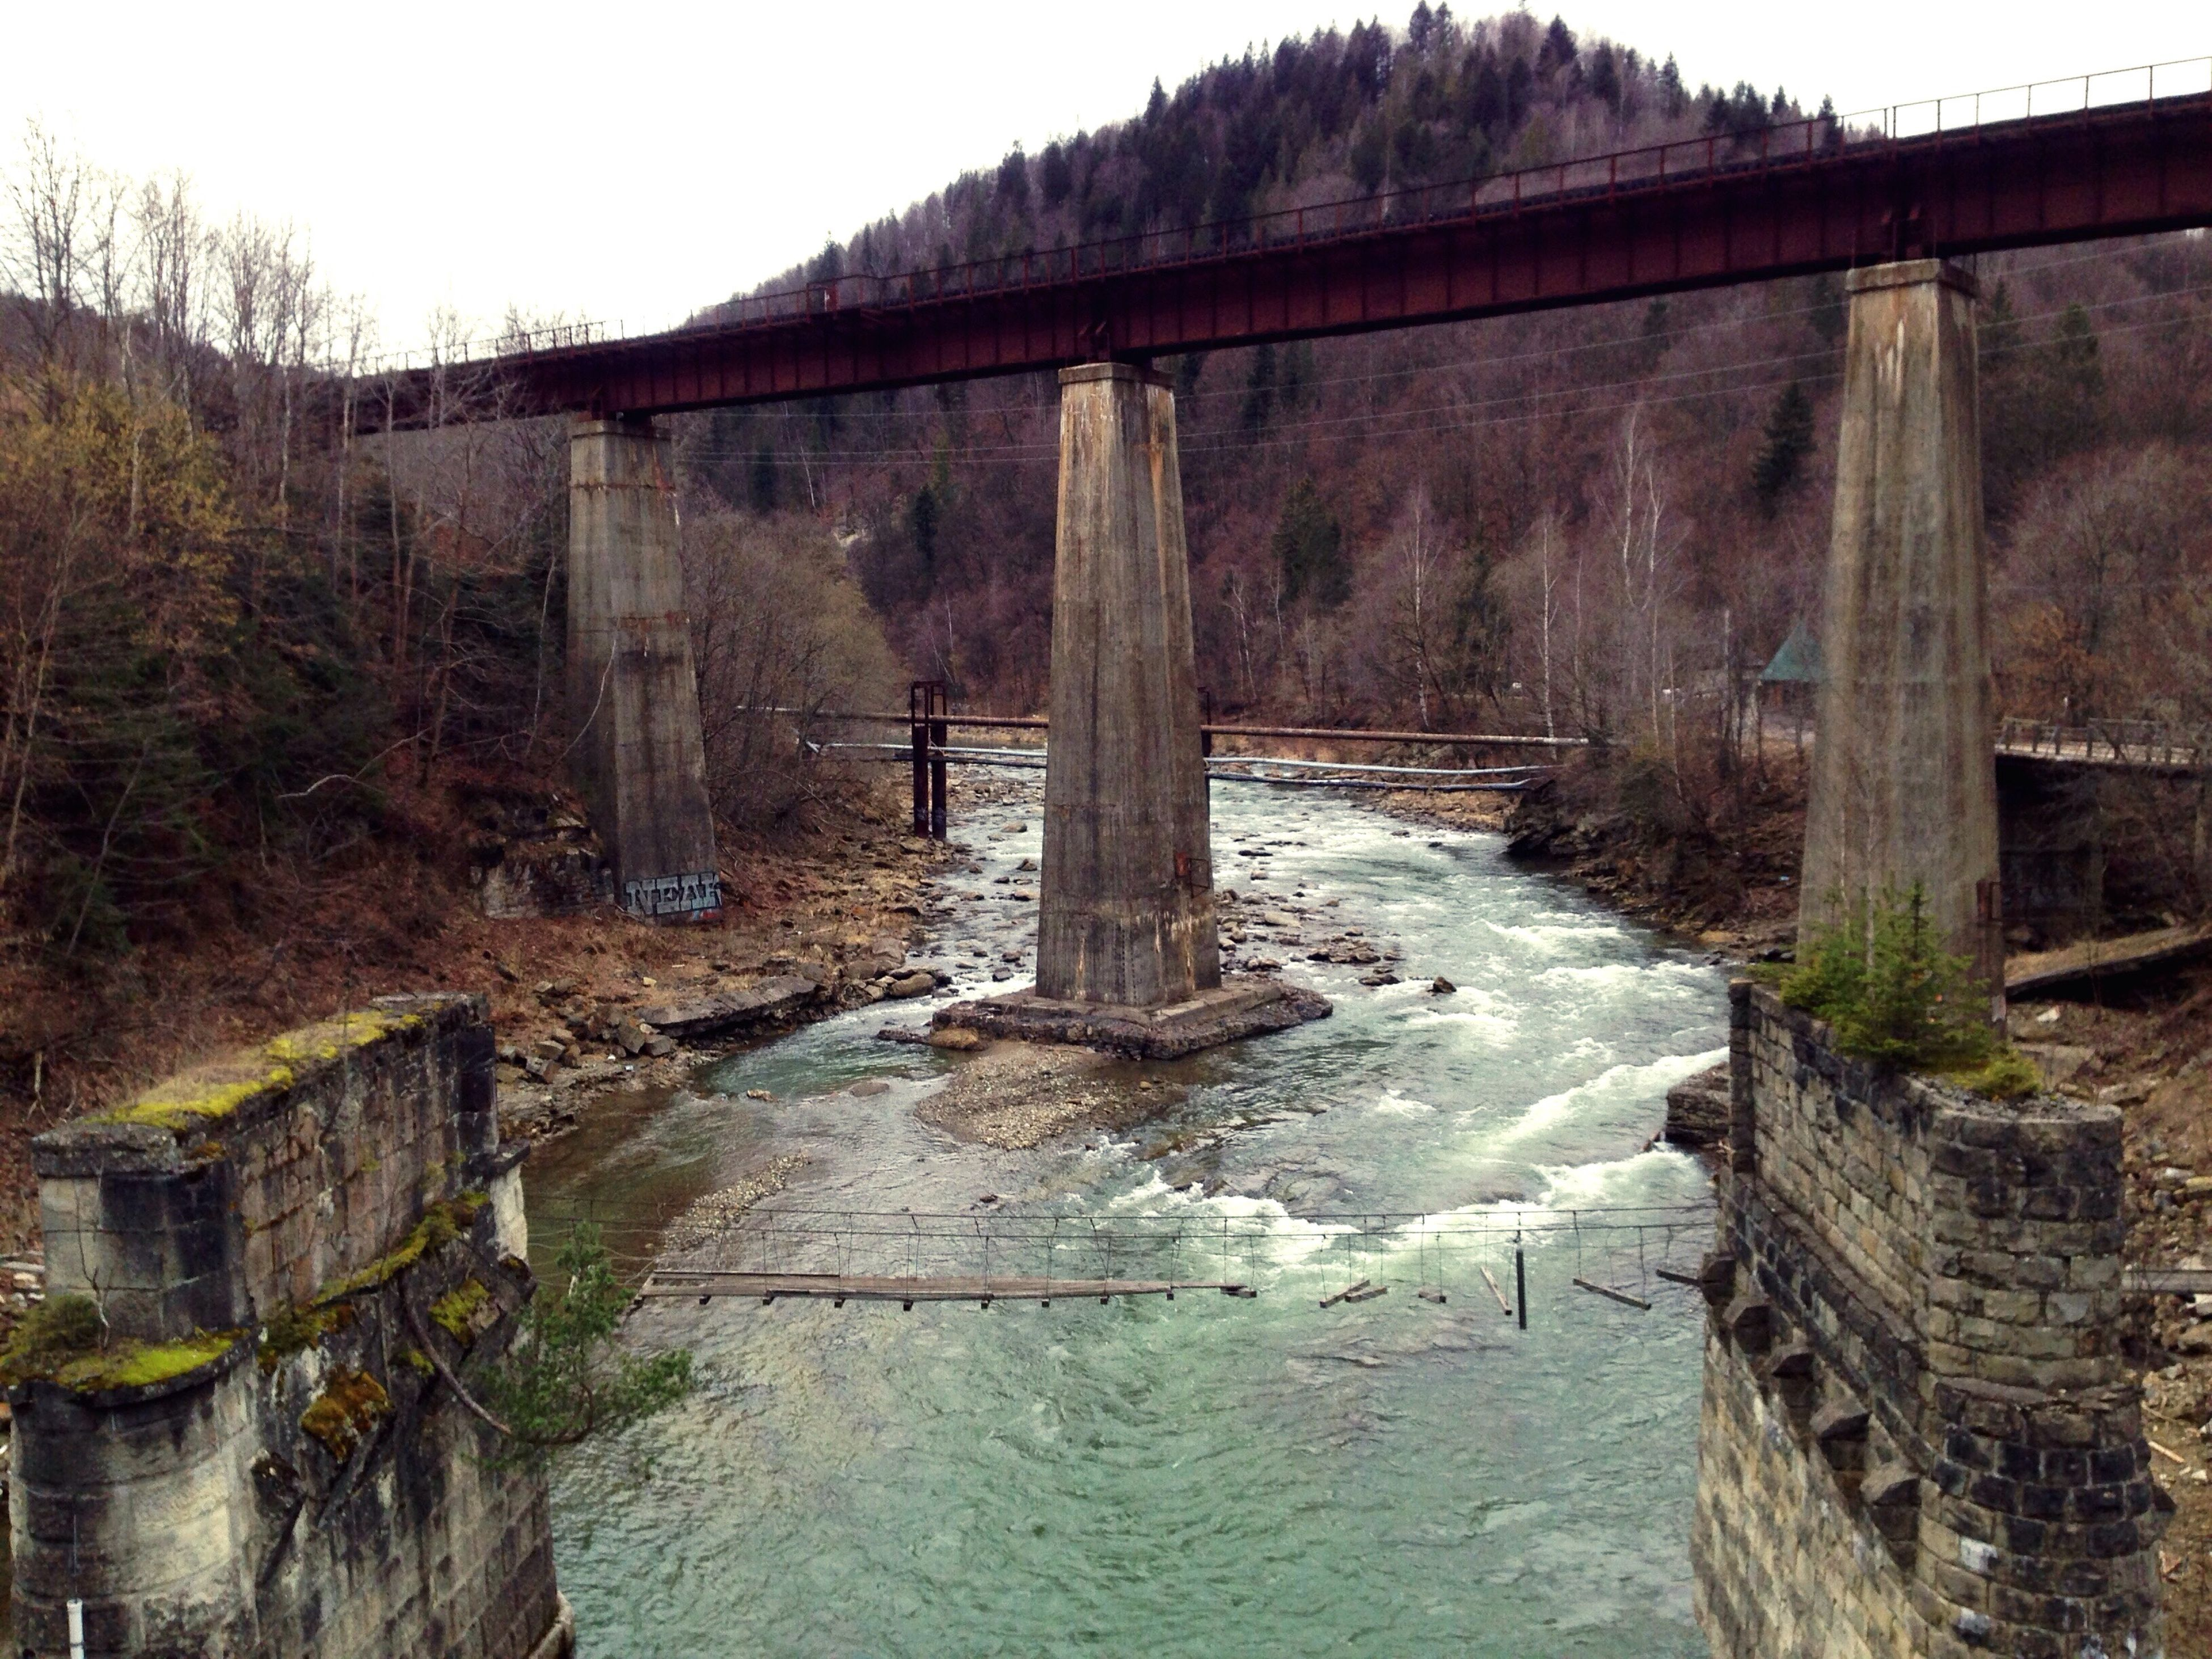 architecture, built structure, building exterior, water, bridge - man made structure, connection, arch, clear sky, sky, tree, mountain, river, bridge, stone wall, rock - object, day, old, old ruin, outdoors, house